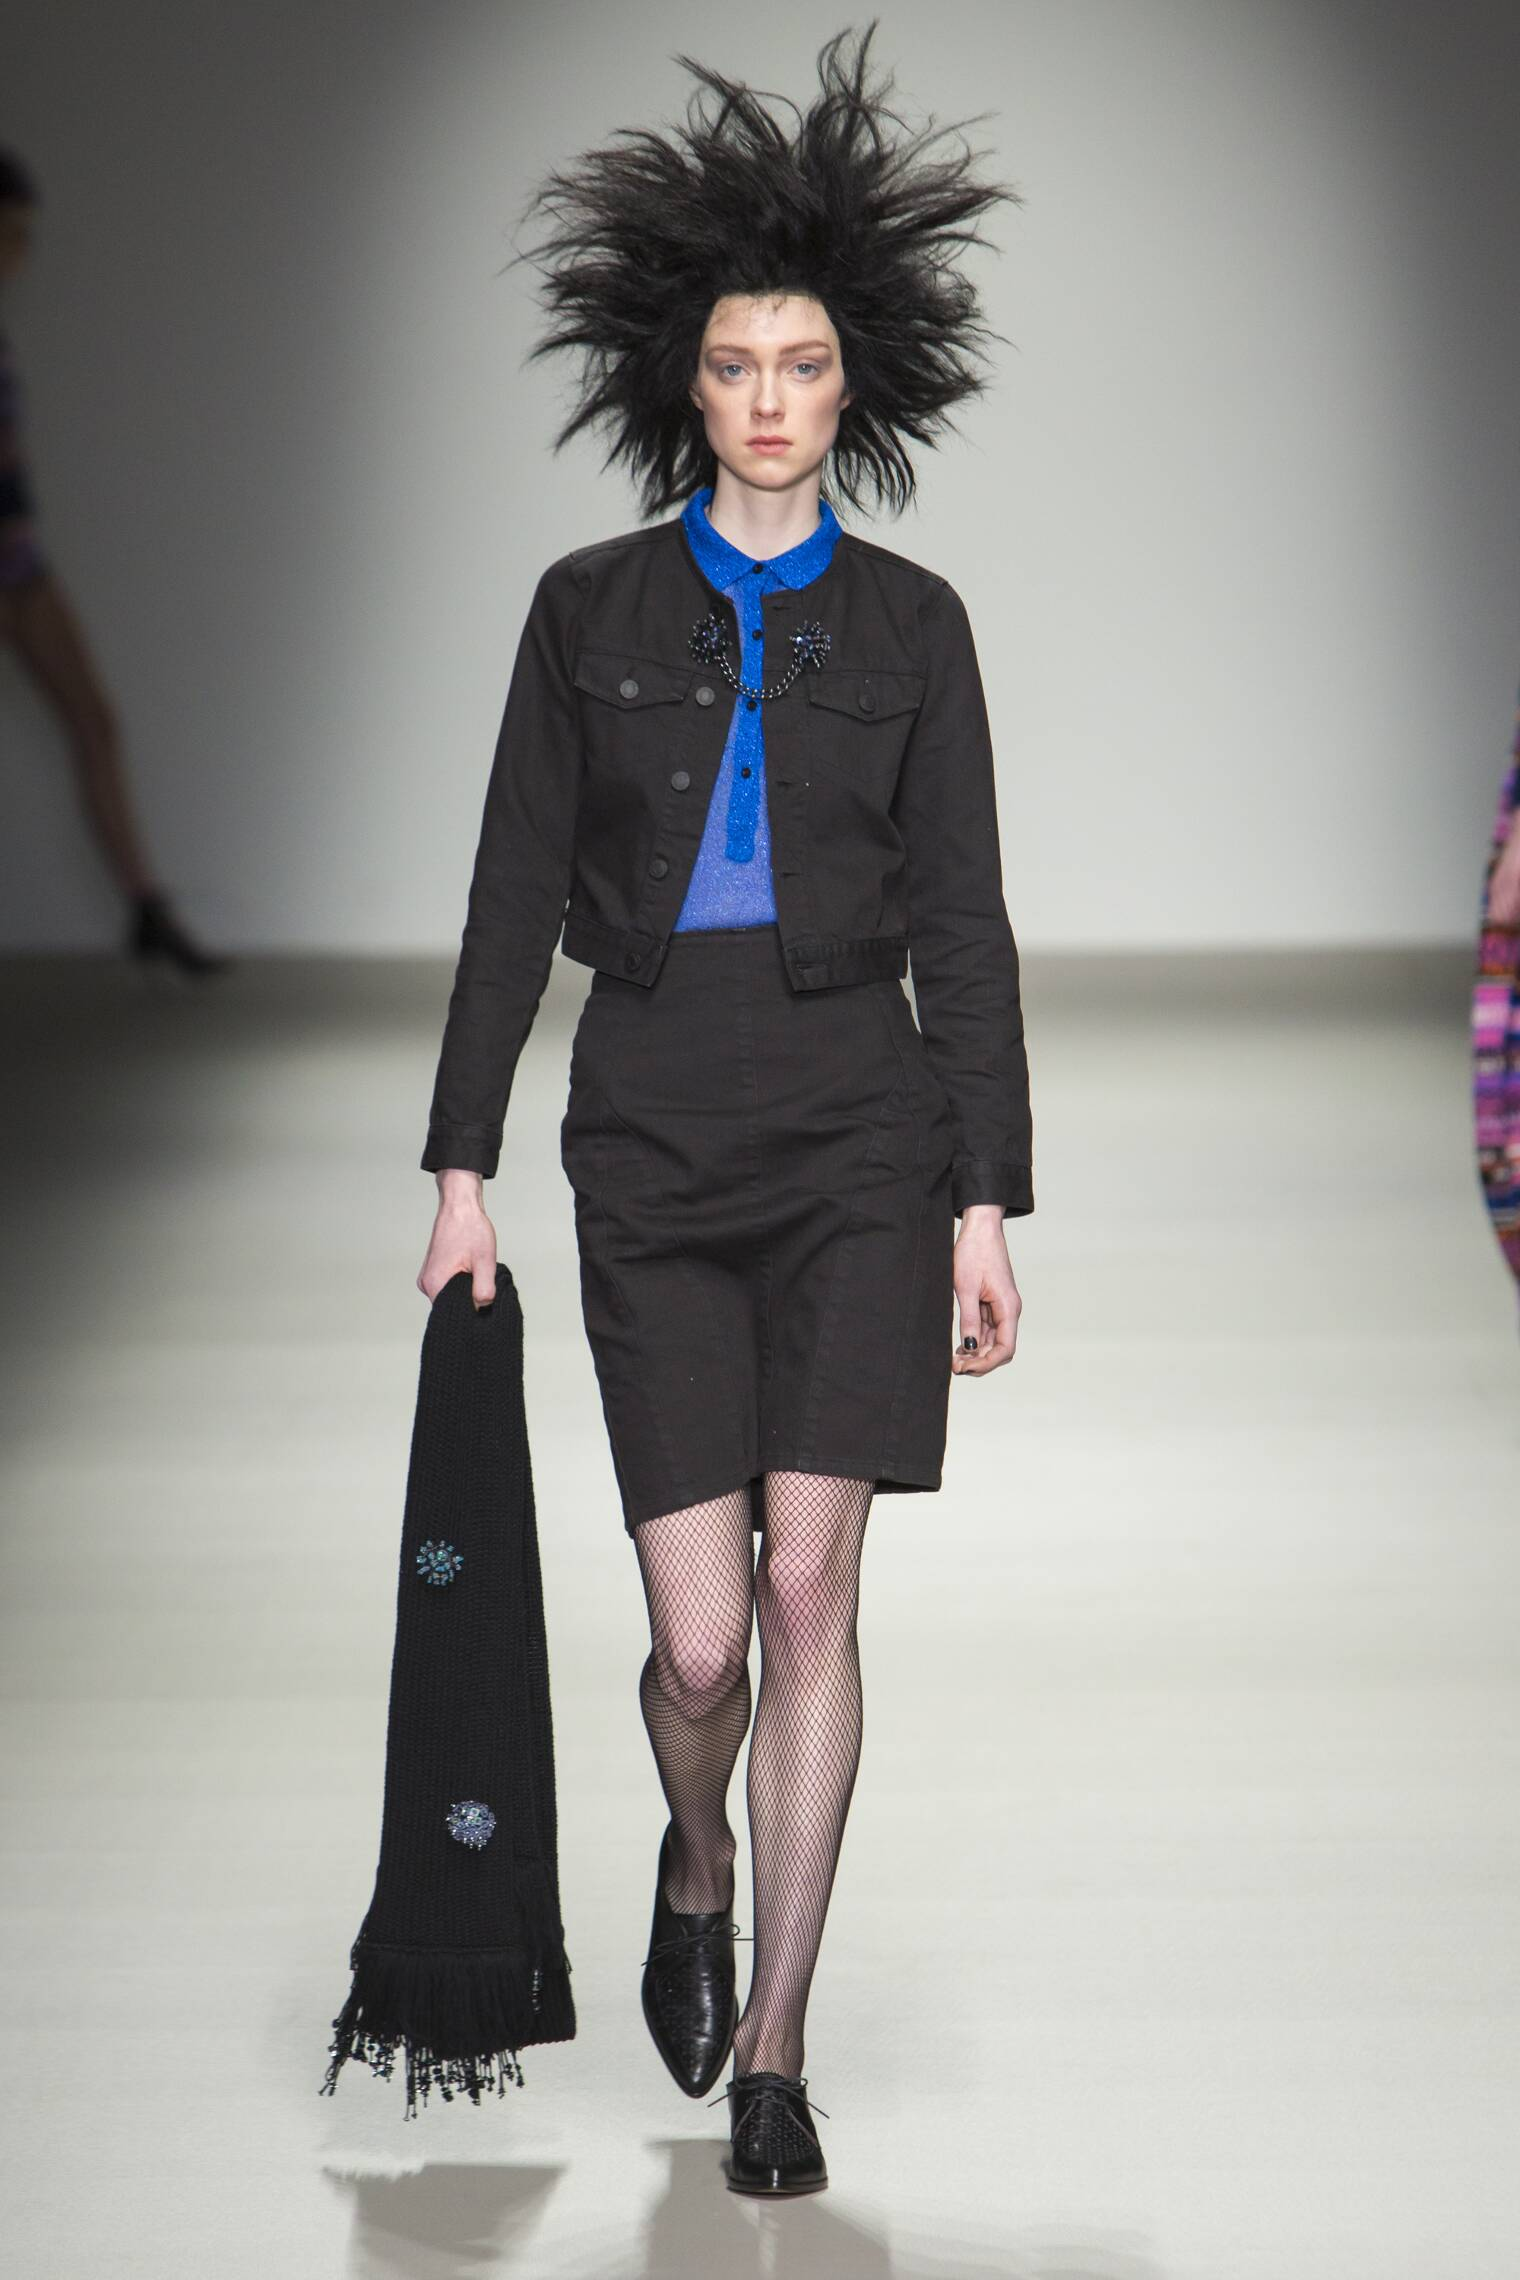 Winter 2015 Fashion Show Sibling Collection